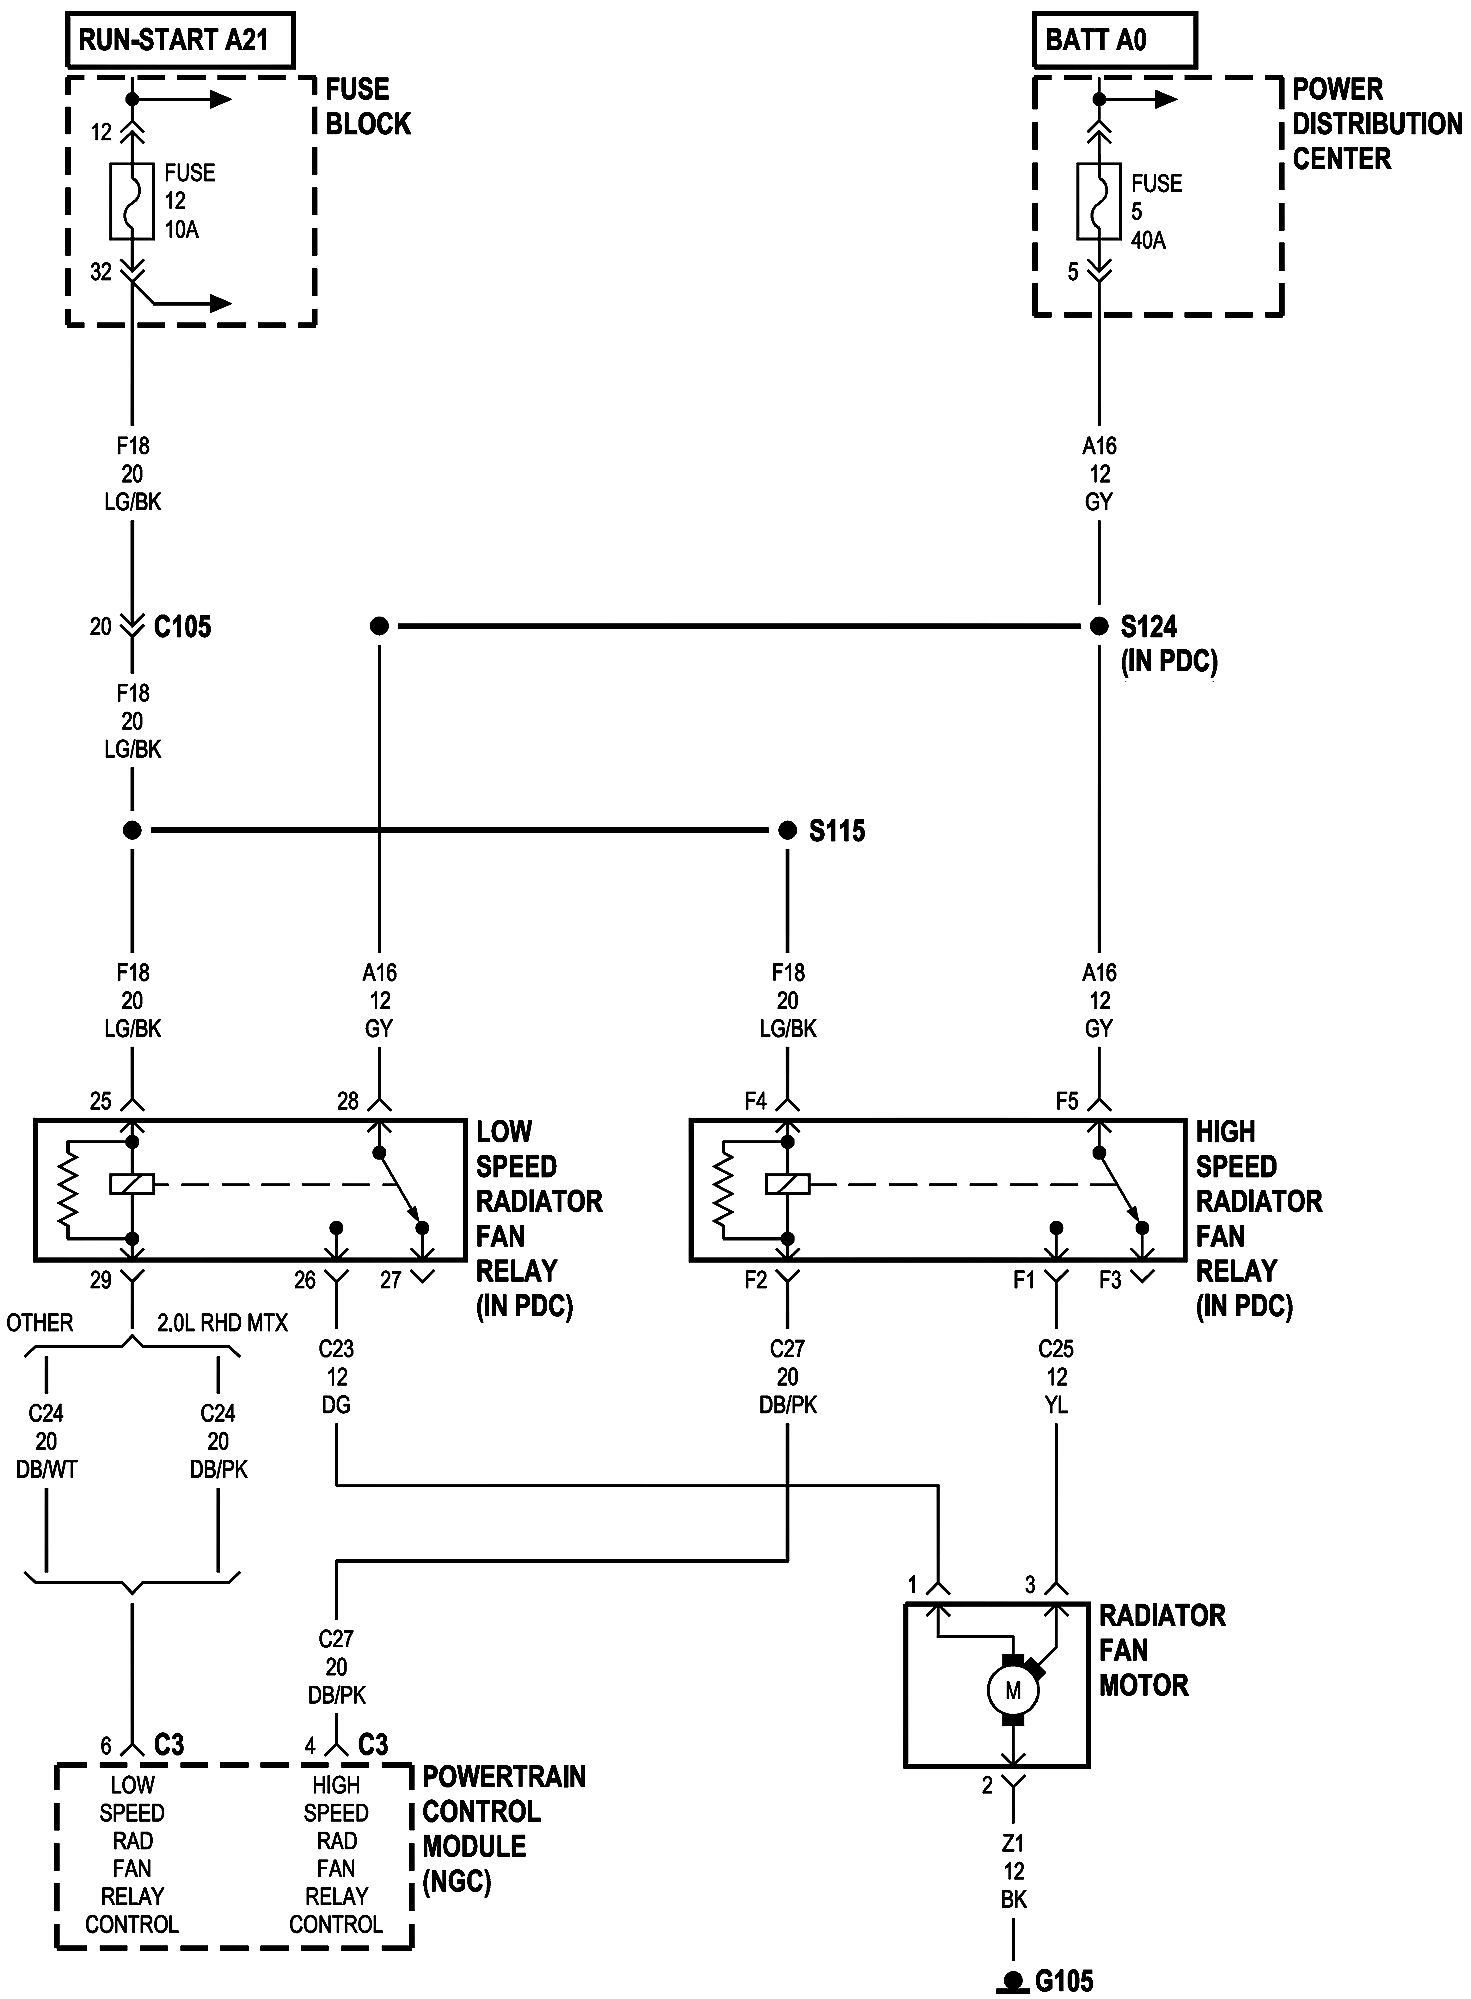 p 0900c152800ad9ee with 2007 Gmc Yukon Headlight Wiring Diagram on 85 Toyota 4x4 Engine Diagram furthermore 1991 Mitsubishi Eclipse Car Stereo Wiring Diagram as well 2008 Saturn Outlook Wiring Schematic likewise 03 Navigator Fuse Box Diagram as well International 4700 Wiring Diagram Electric.